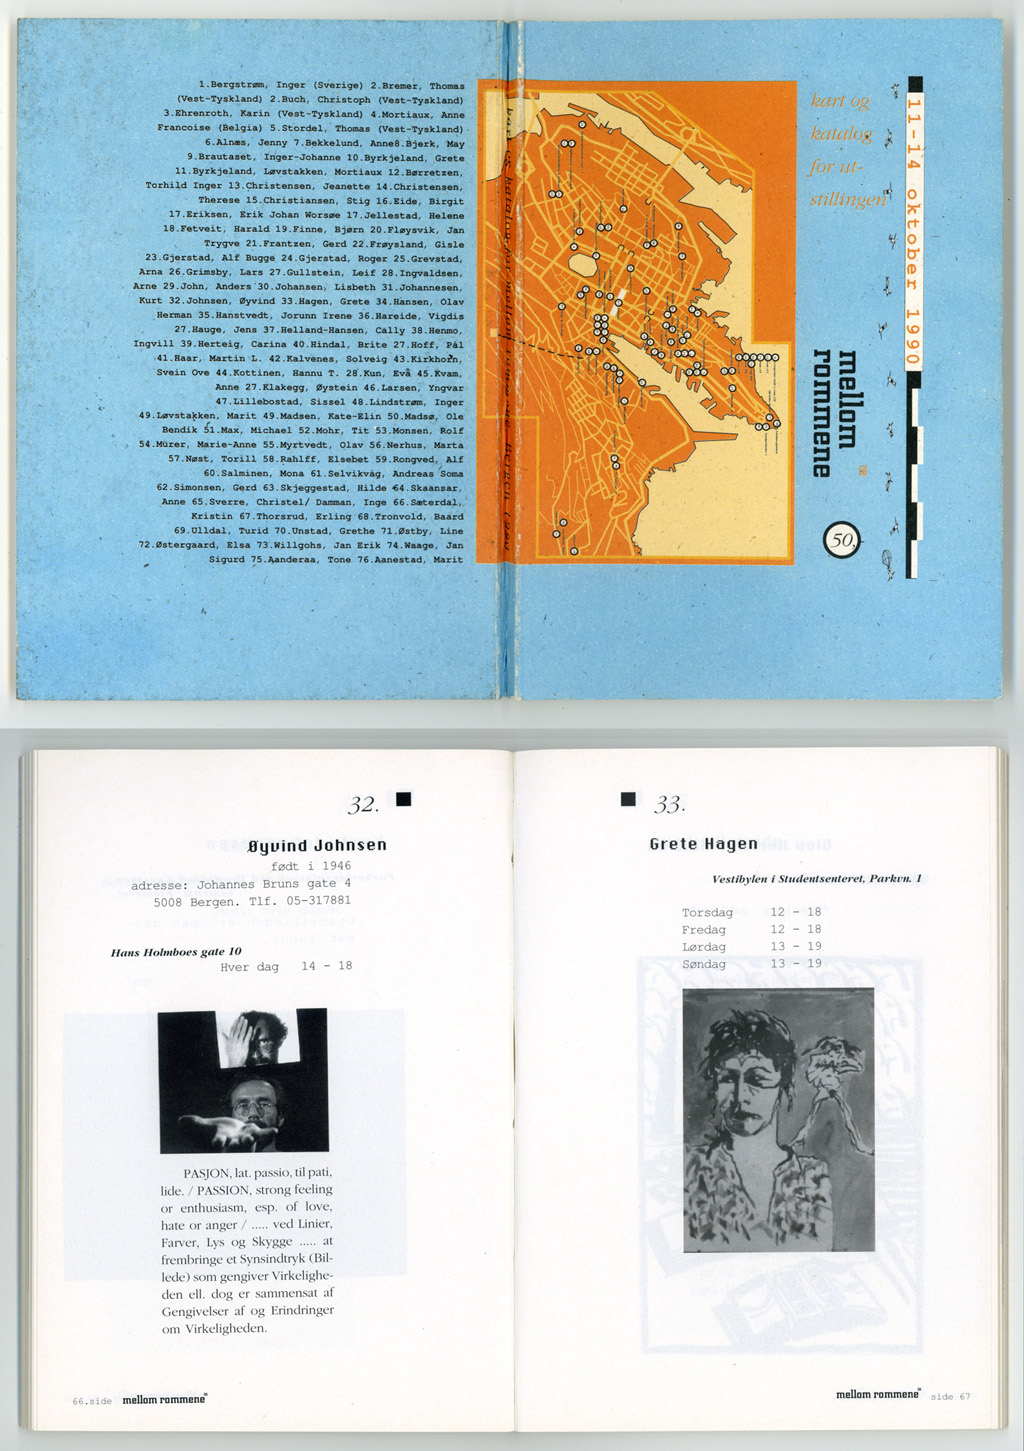 000ny 1990-exhibition-catalogue-Mellom-rommene-1